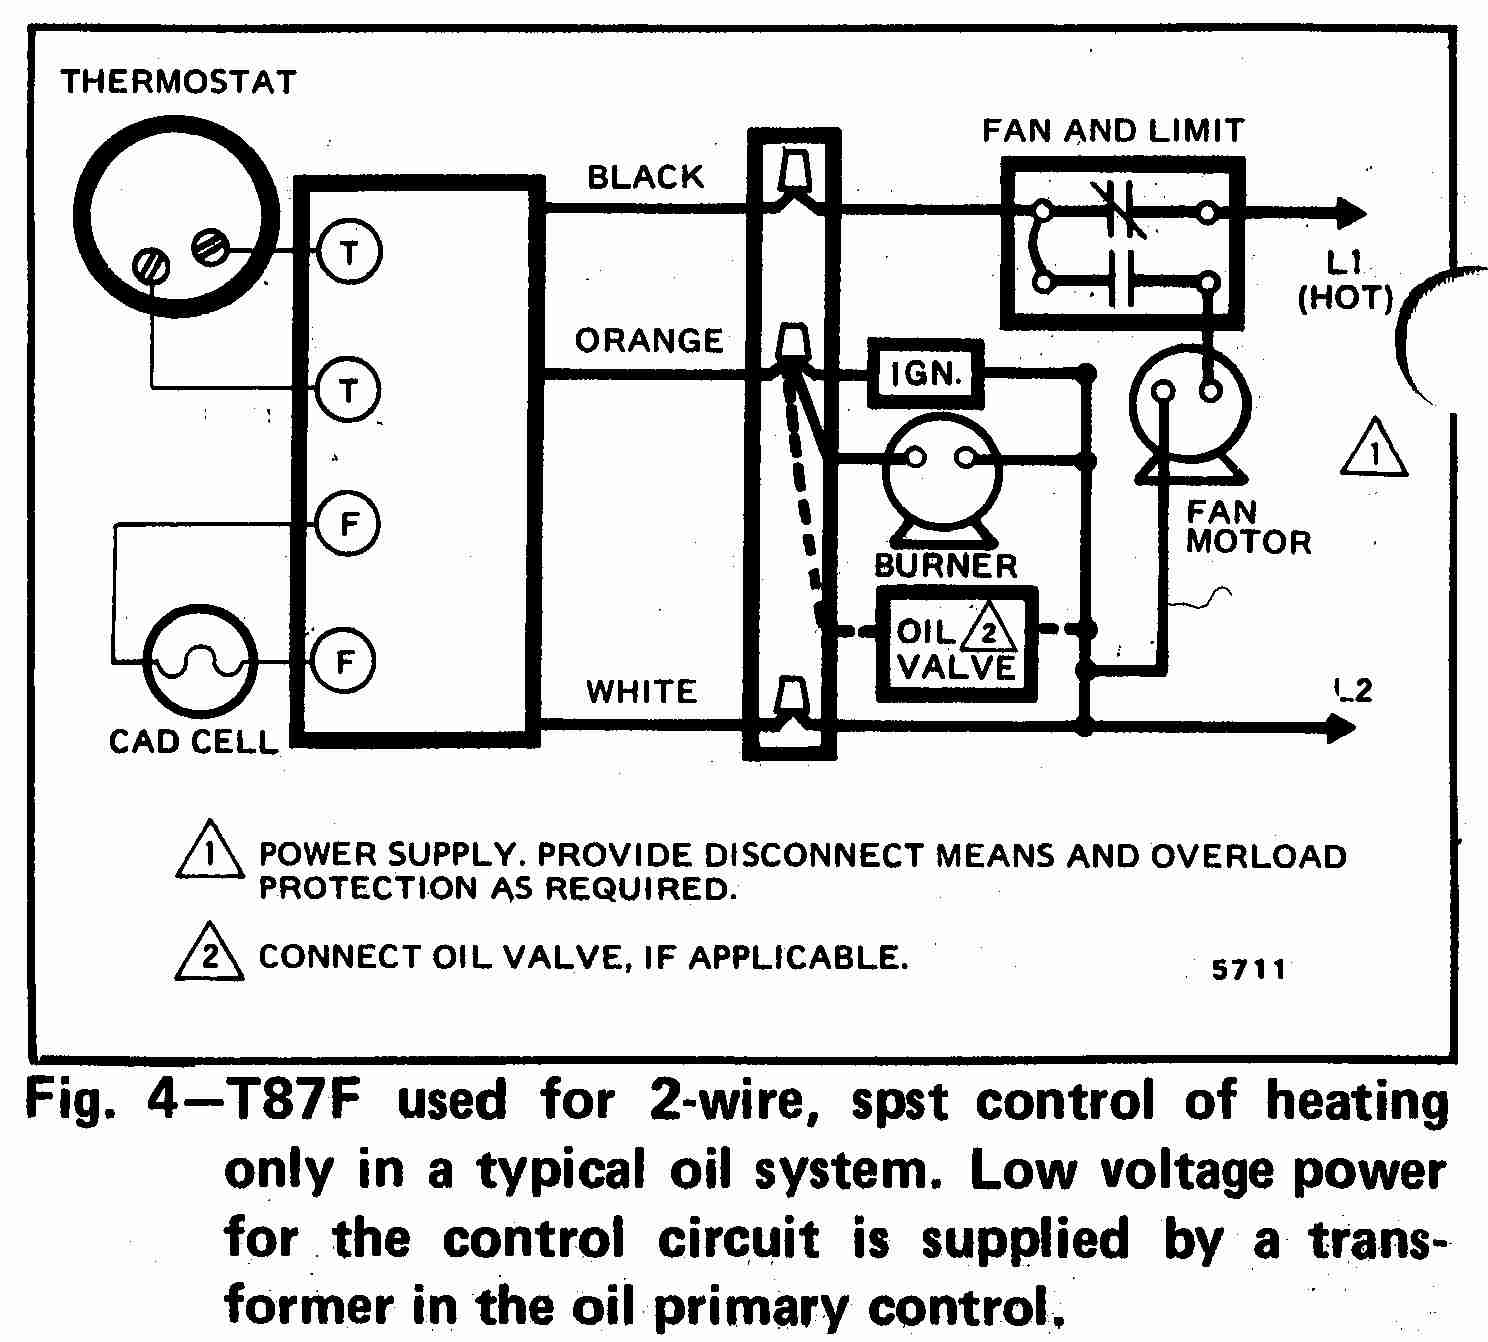 TT_T87F_0002_2W_DJF room thermostat wiring diagrams for hvac systems Basic Outlet Wiring Diagrams at aneh.co